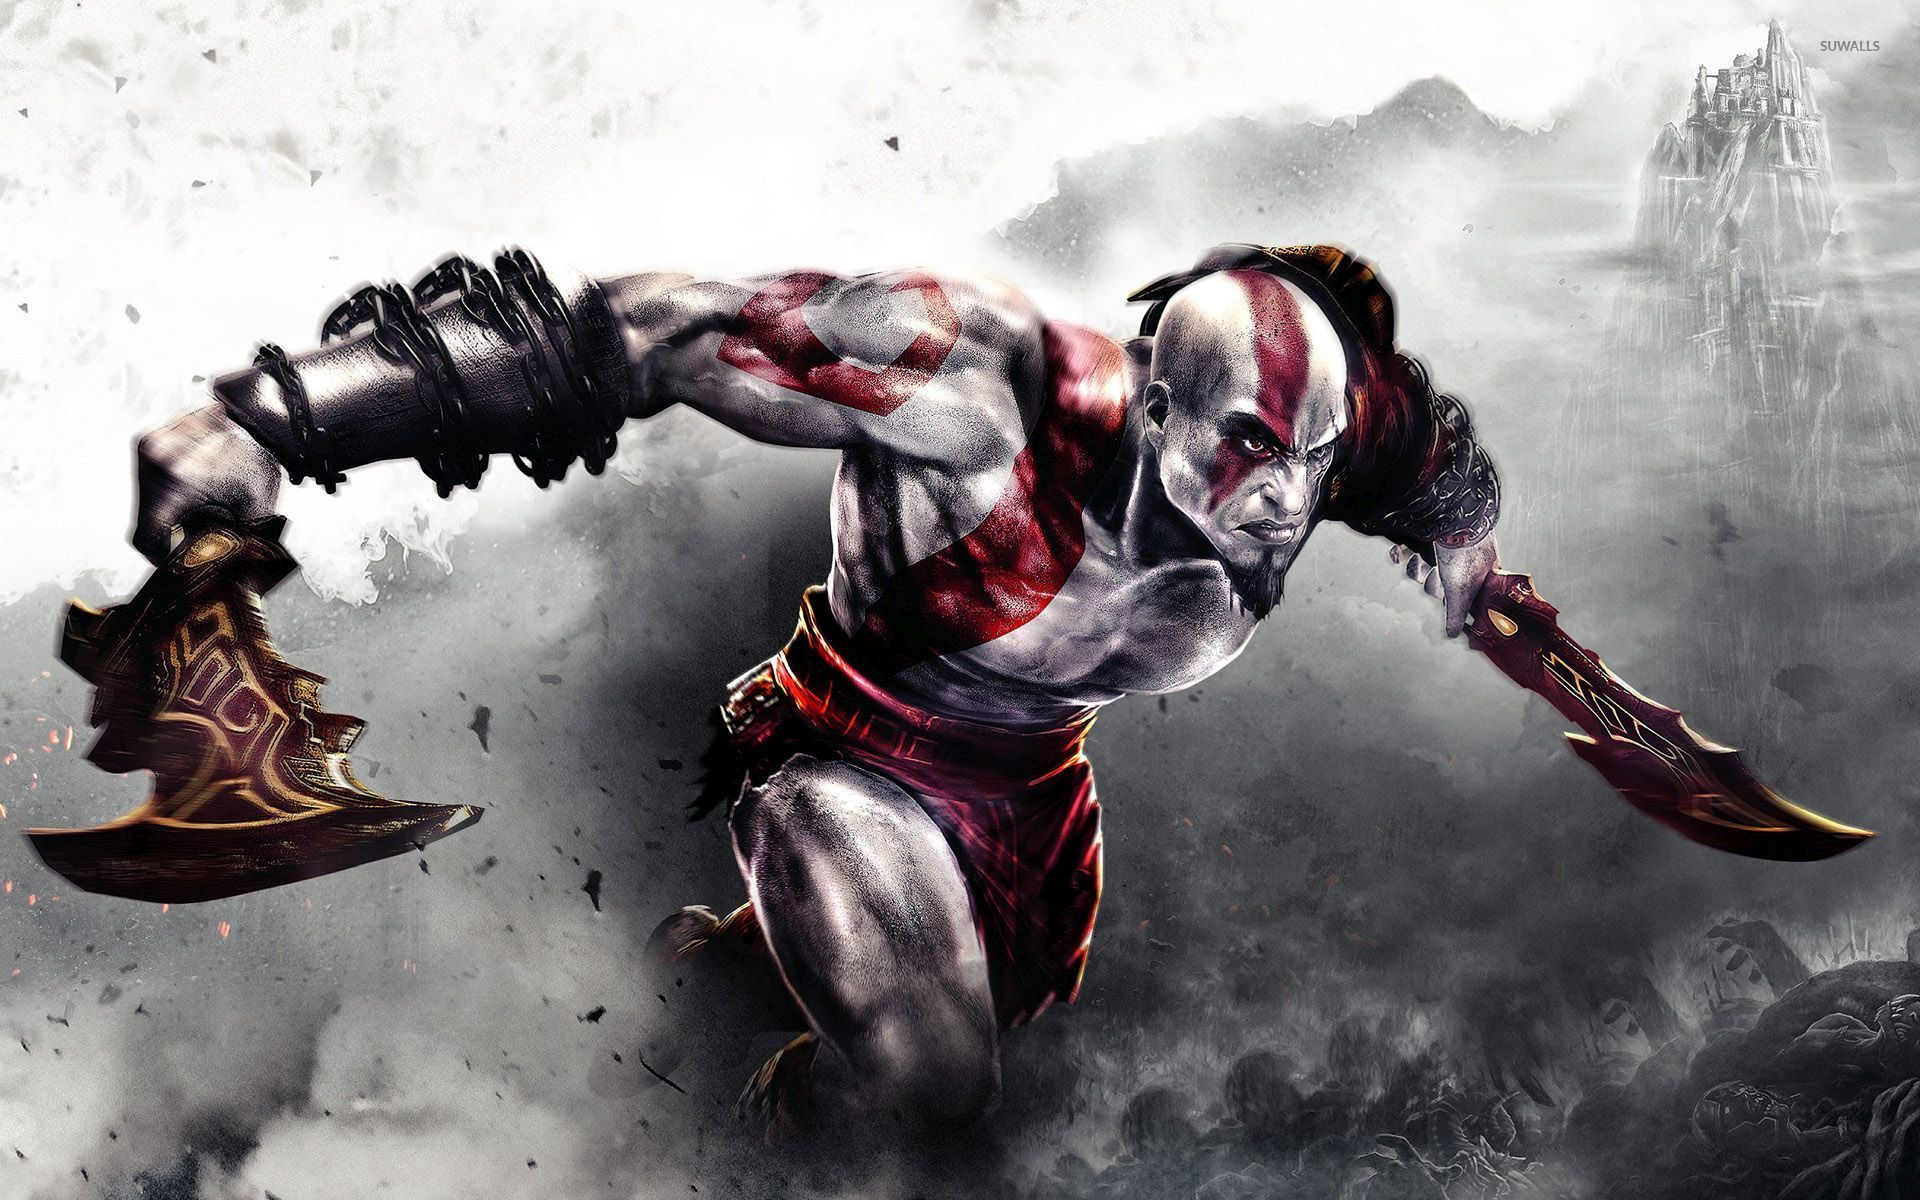 kratos with a sword god of war 54553 1920x1200